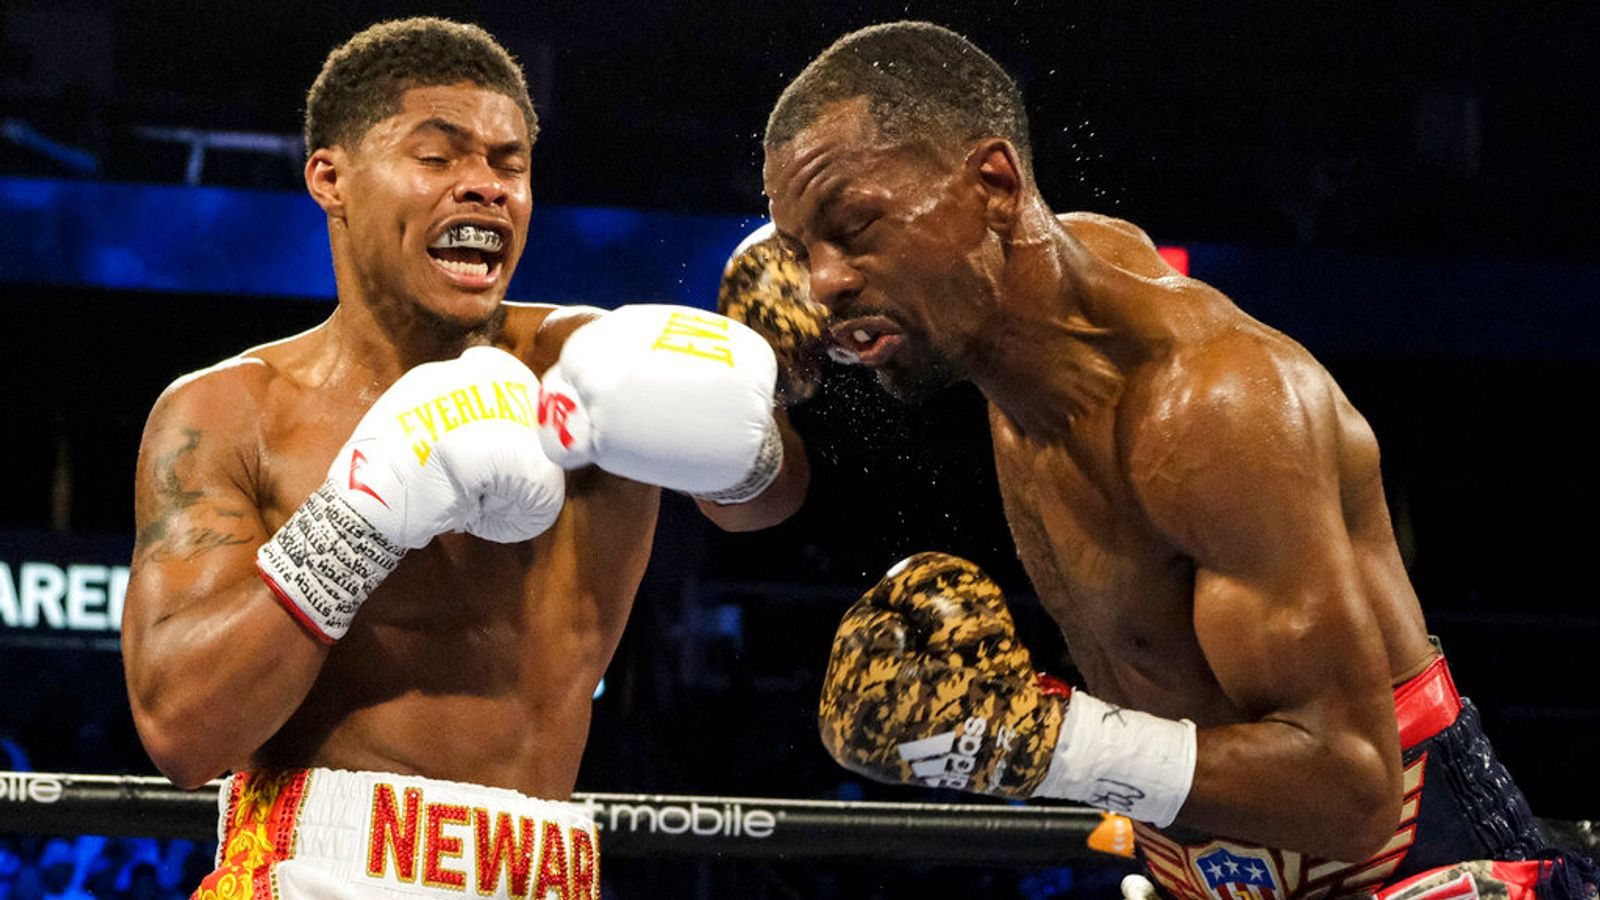 American boxer Shakur Stevenson defeated Jamel Herring in the 10th round to extend unbeaten record.